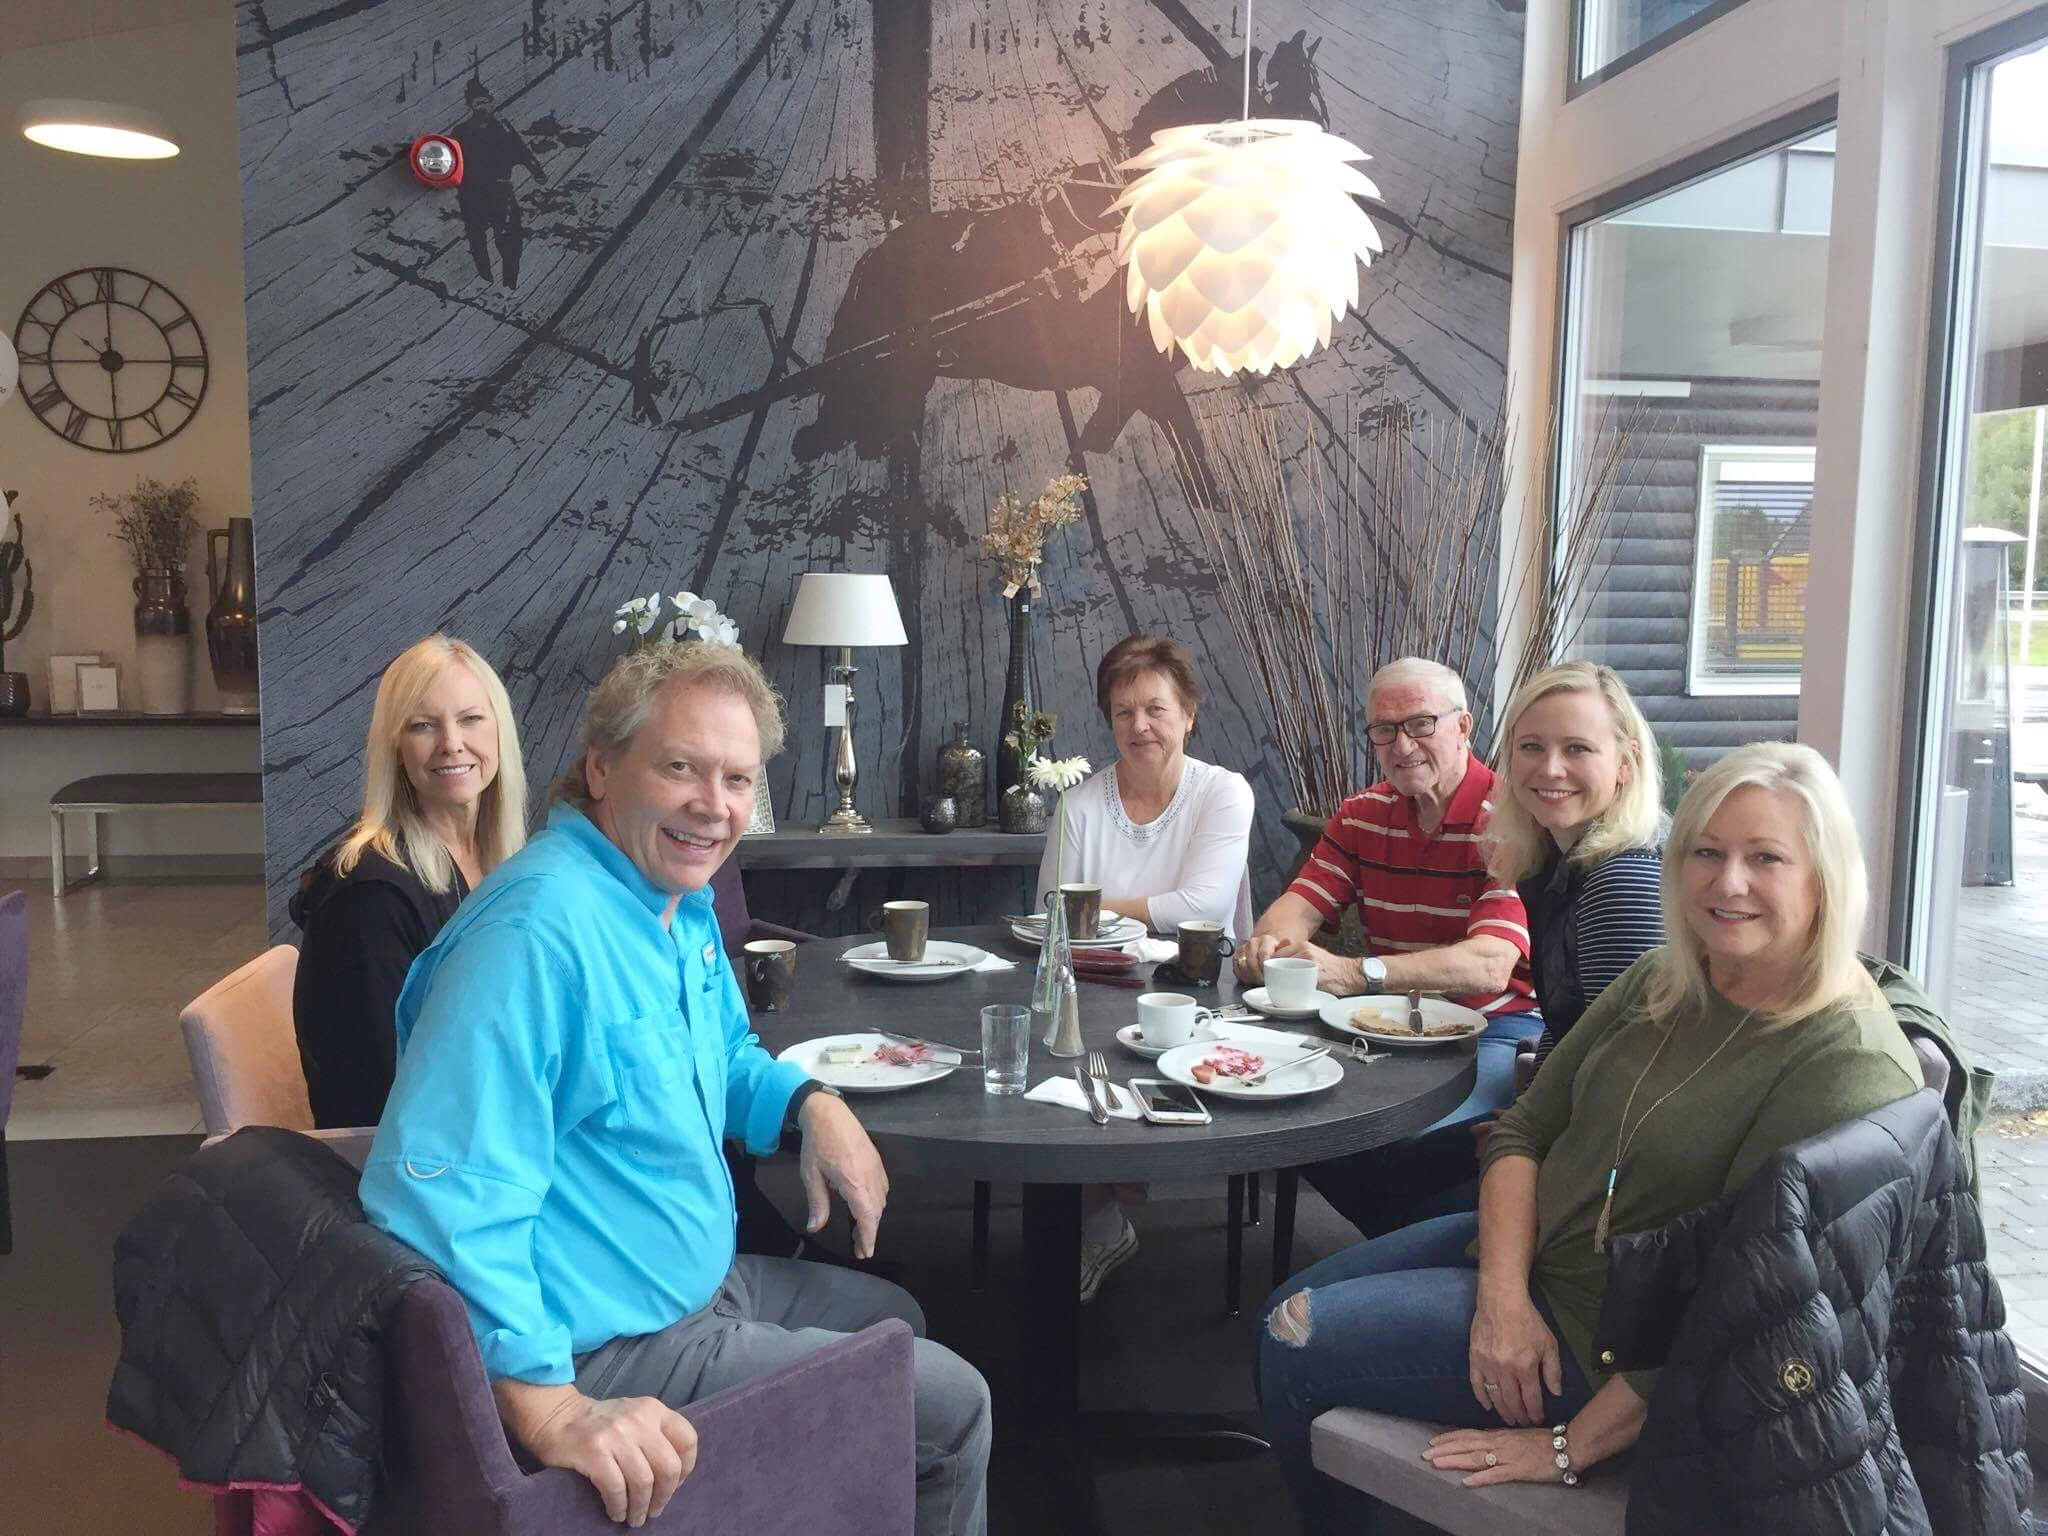 Gracia, Lyle, Audni and Roger Ferger, Rachel, and Lois...